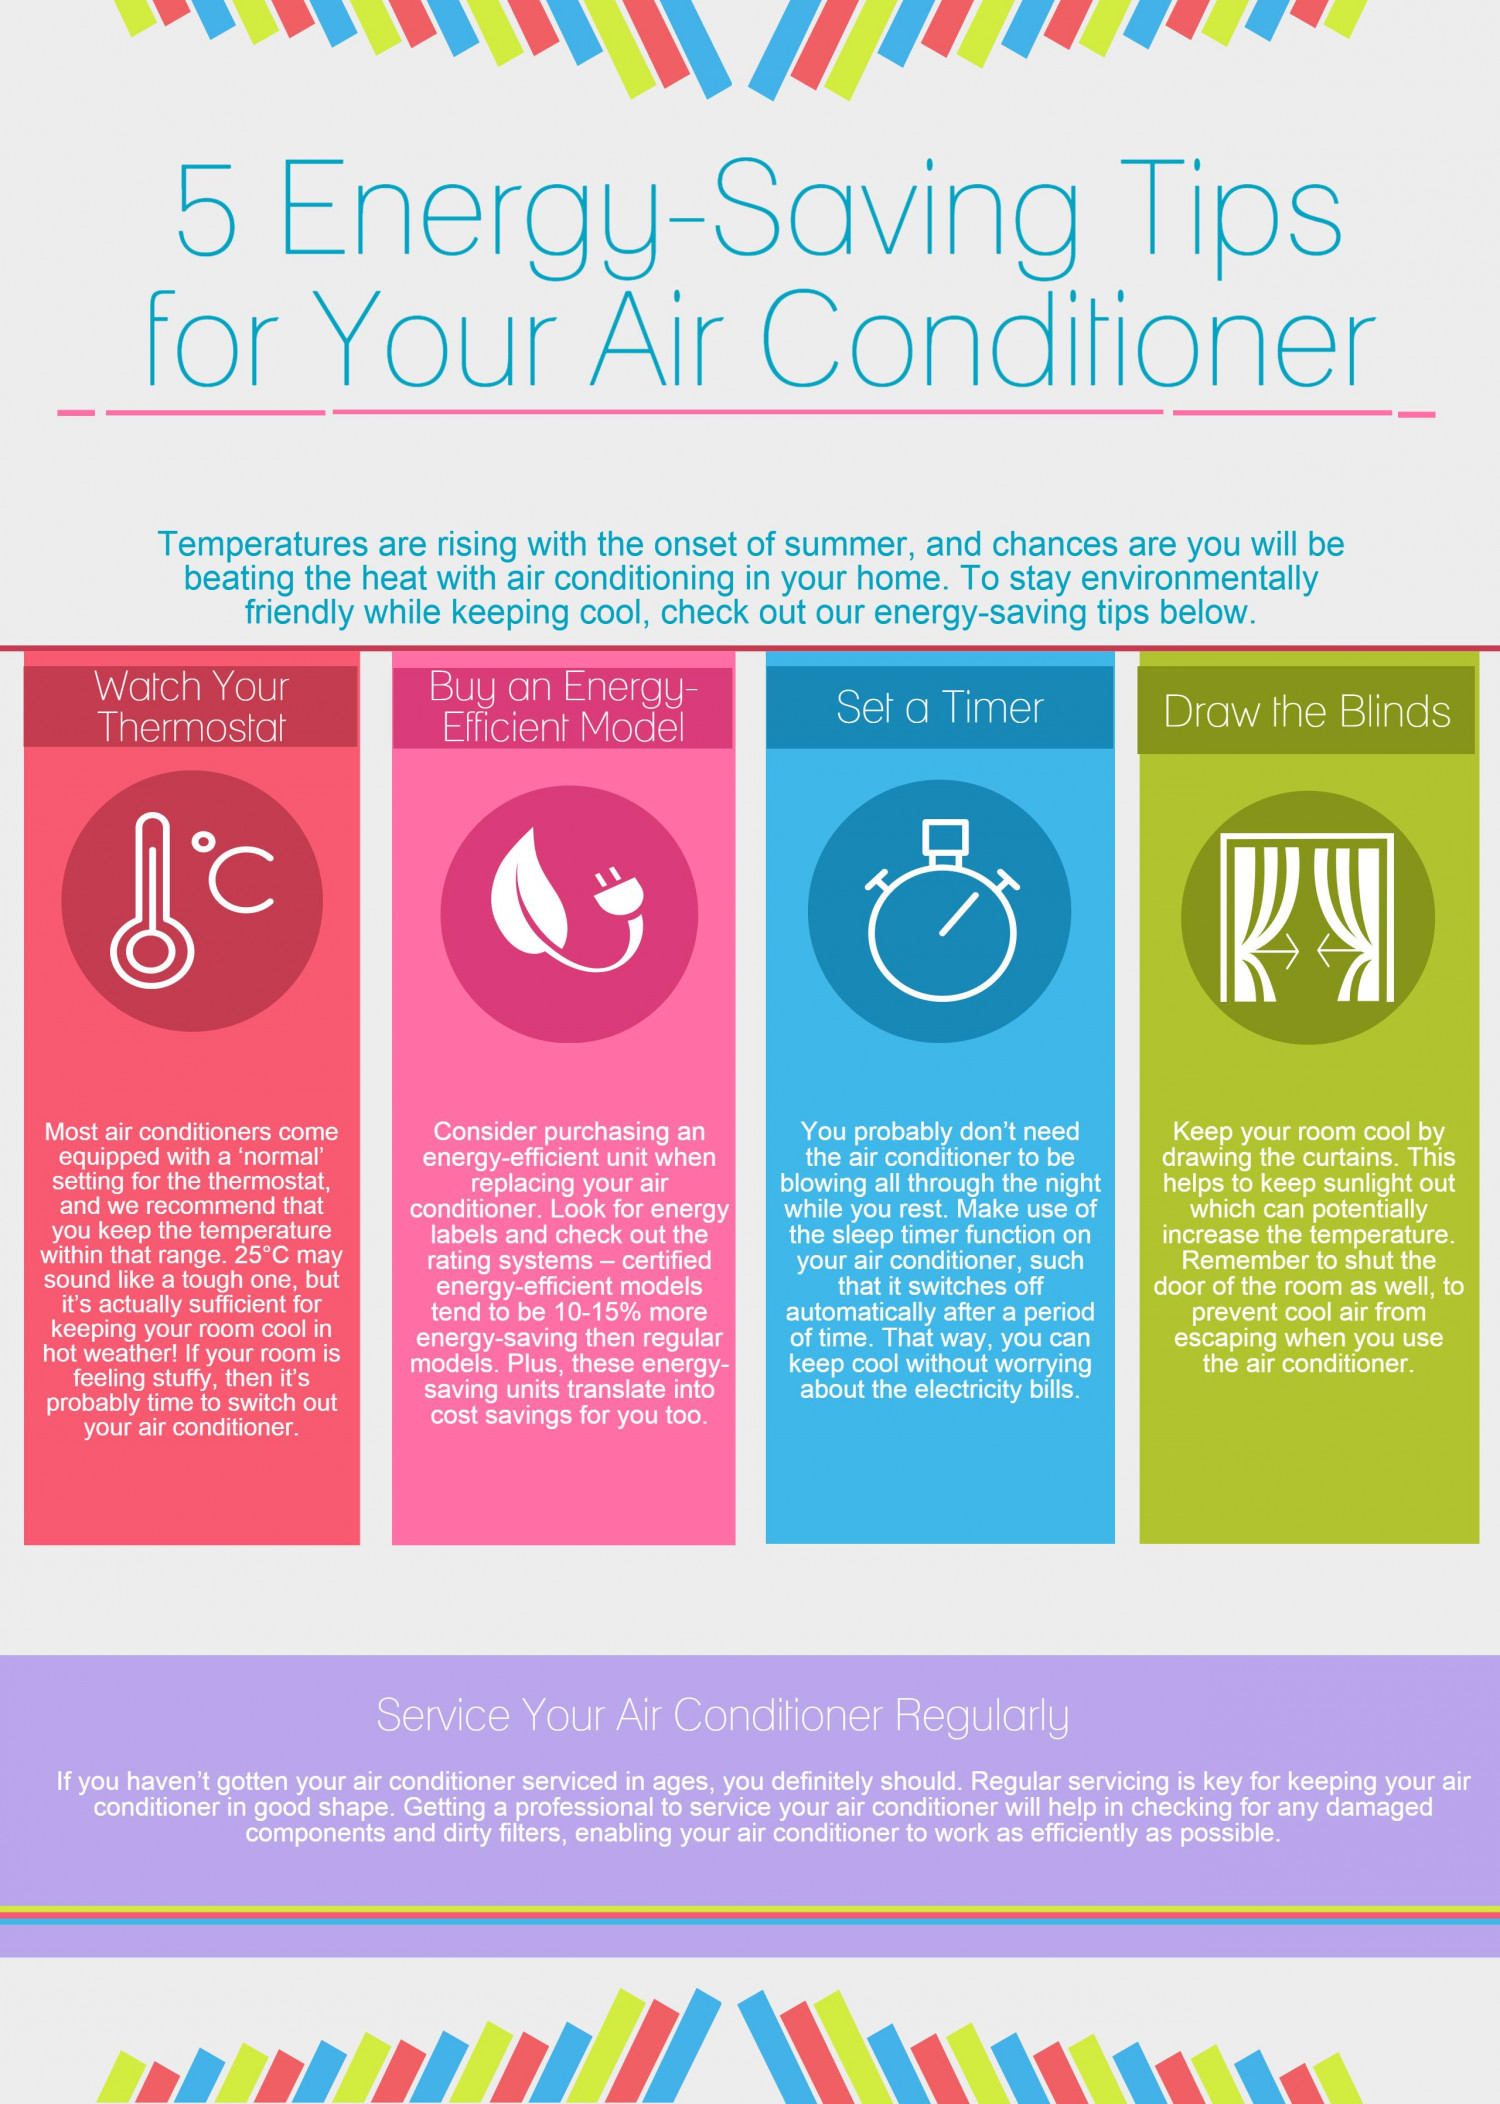 5-energysaving-tips-for-your-air-conditi